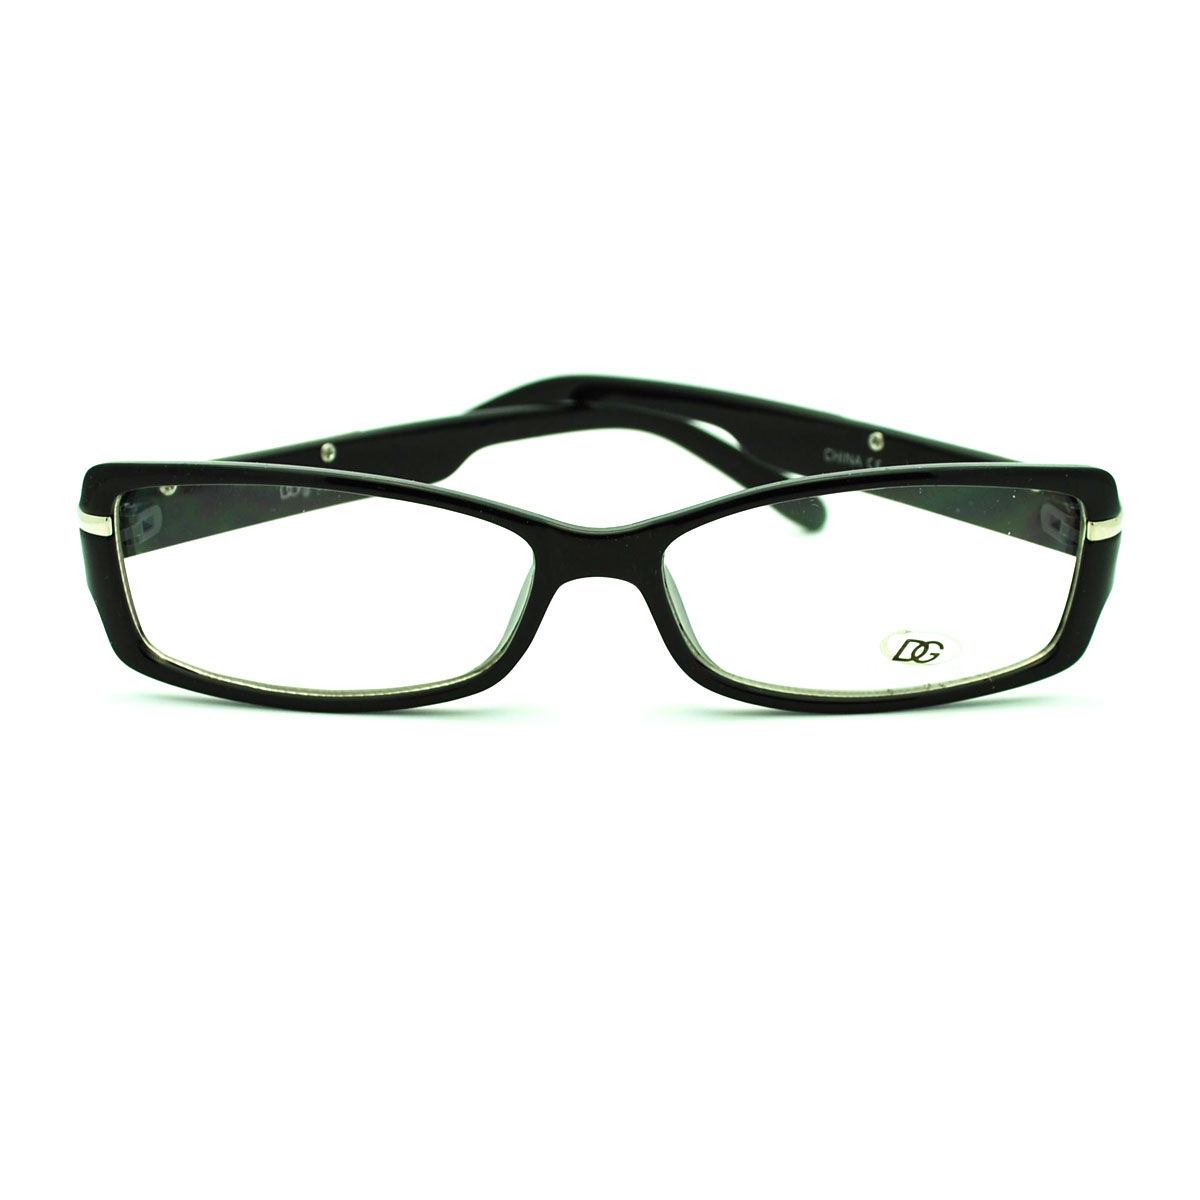 Glasses Frames Too Narrow : DG Eyewear School Girl Narrow Lens Rectangular Fashion Eye ...